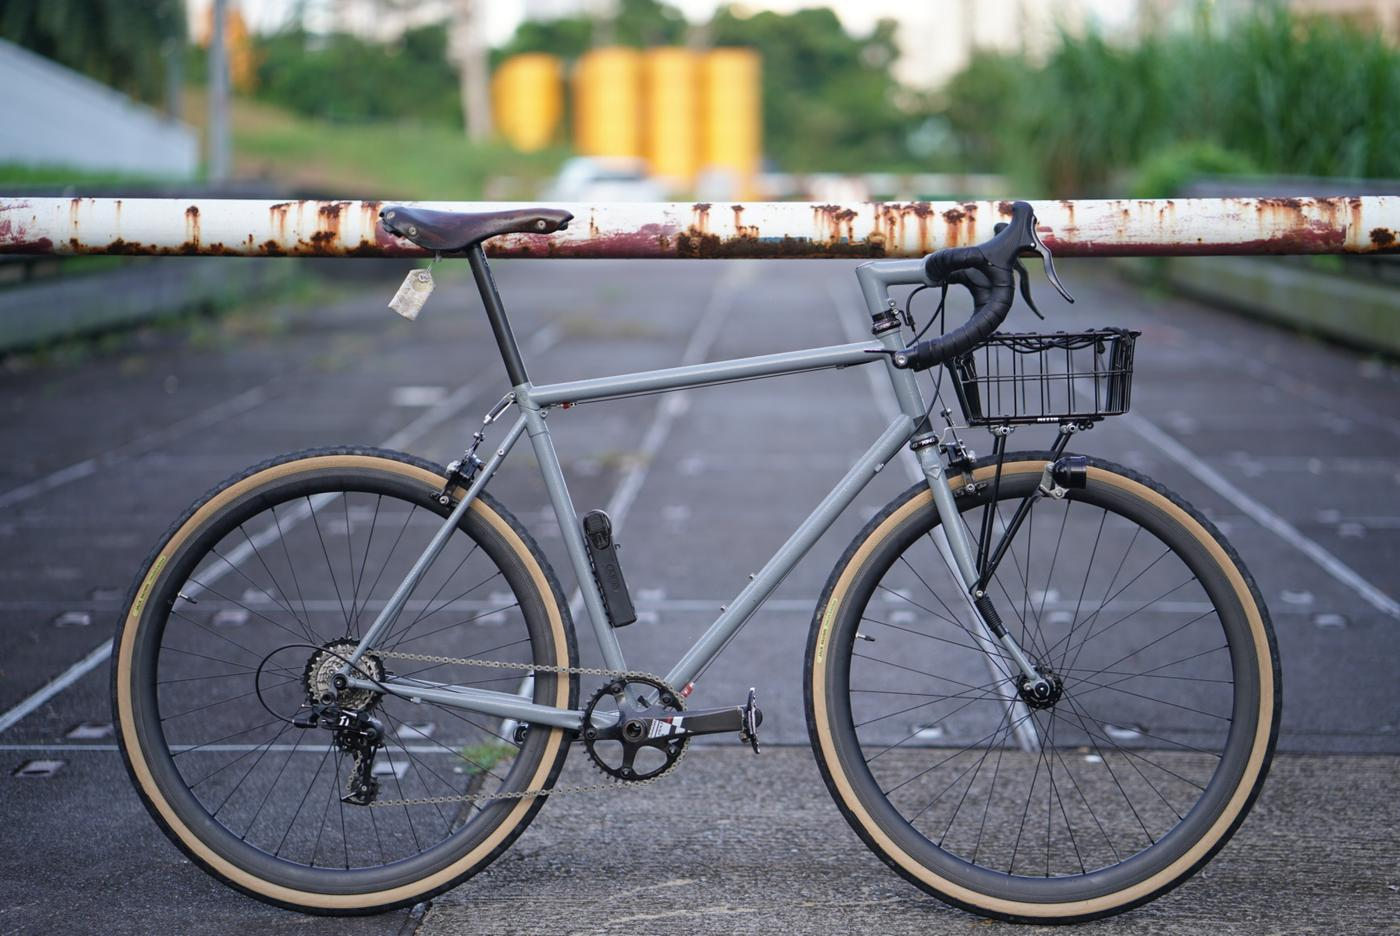 Readers' Rides: Galen's Ritchey Basket Breakaway from Singapore